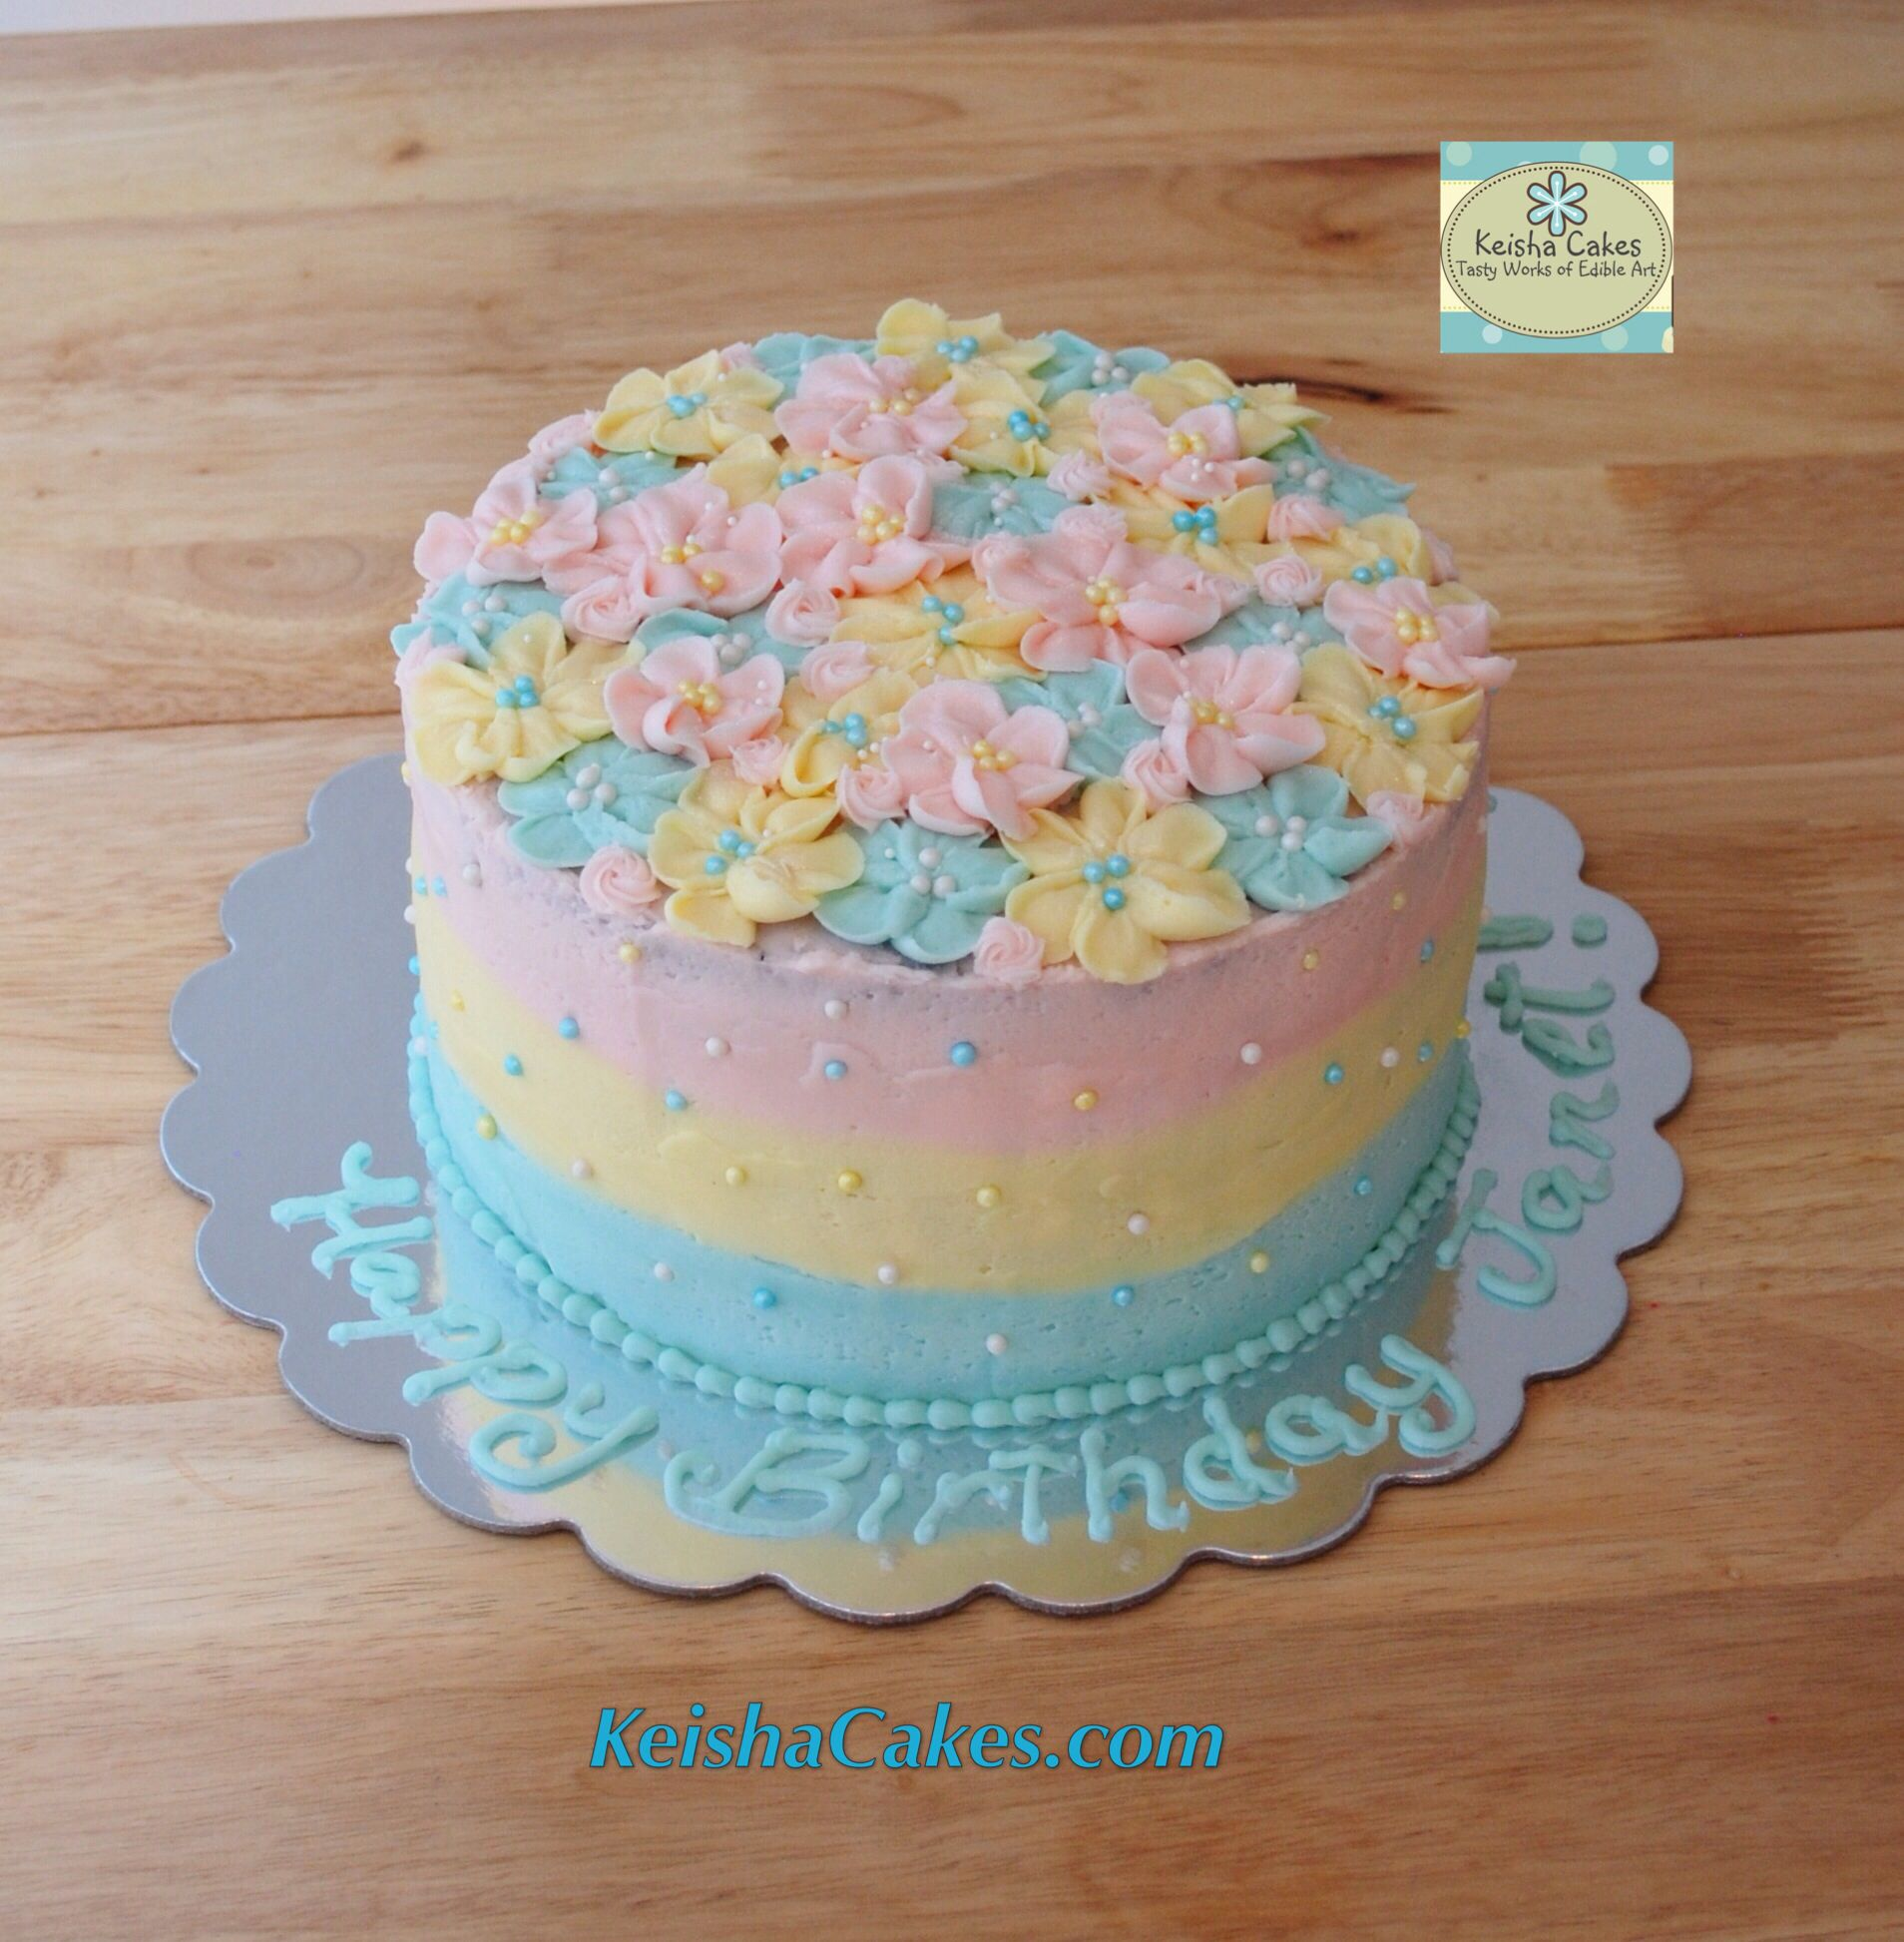 Pastel frosting flowers cake light pink yellow and baby blue used pastel frosting flowers cake light pink yellow and baby blue used made with buttercream frosting and pearl sprinkles on top great for a woman or girls mightylinksfo